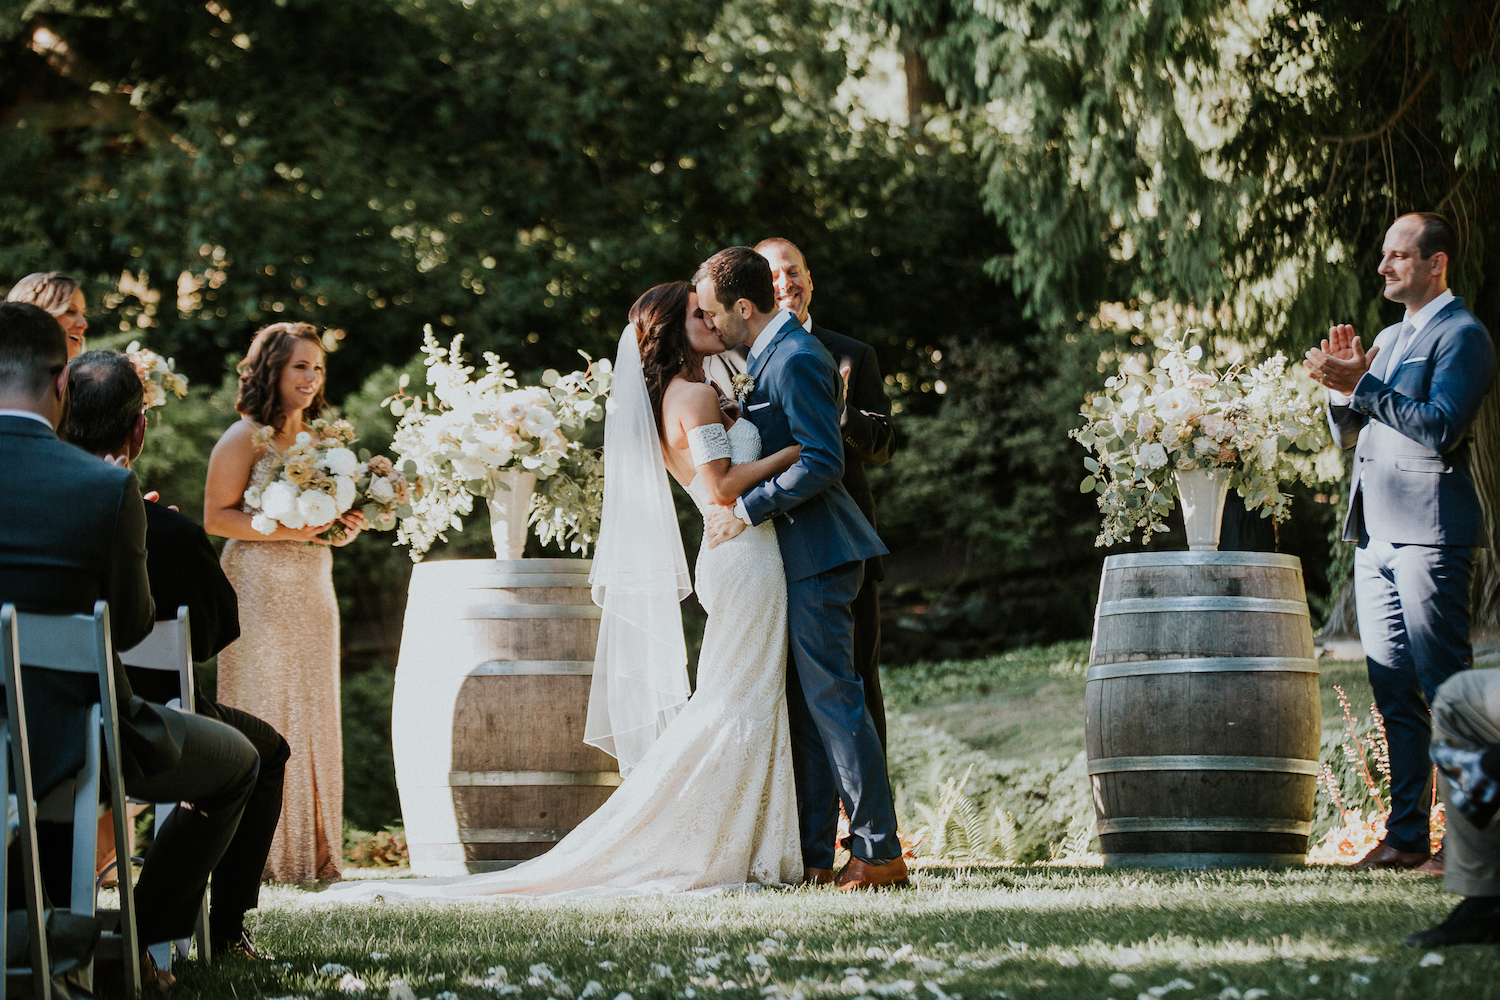 Wild Bloom Floral - Rachel Birkhofer Photography - Jessica and Phil - Real Wedding - Seattle 11.jpeg